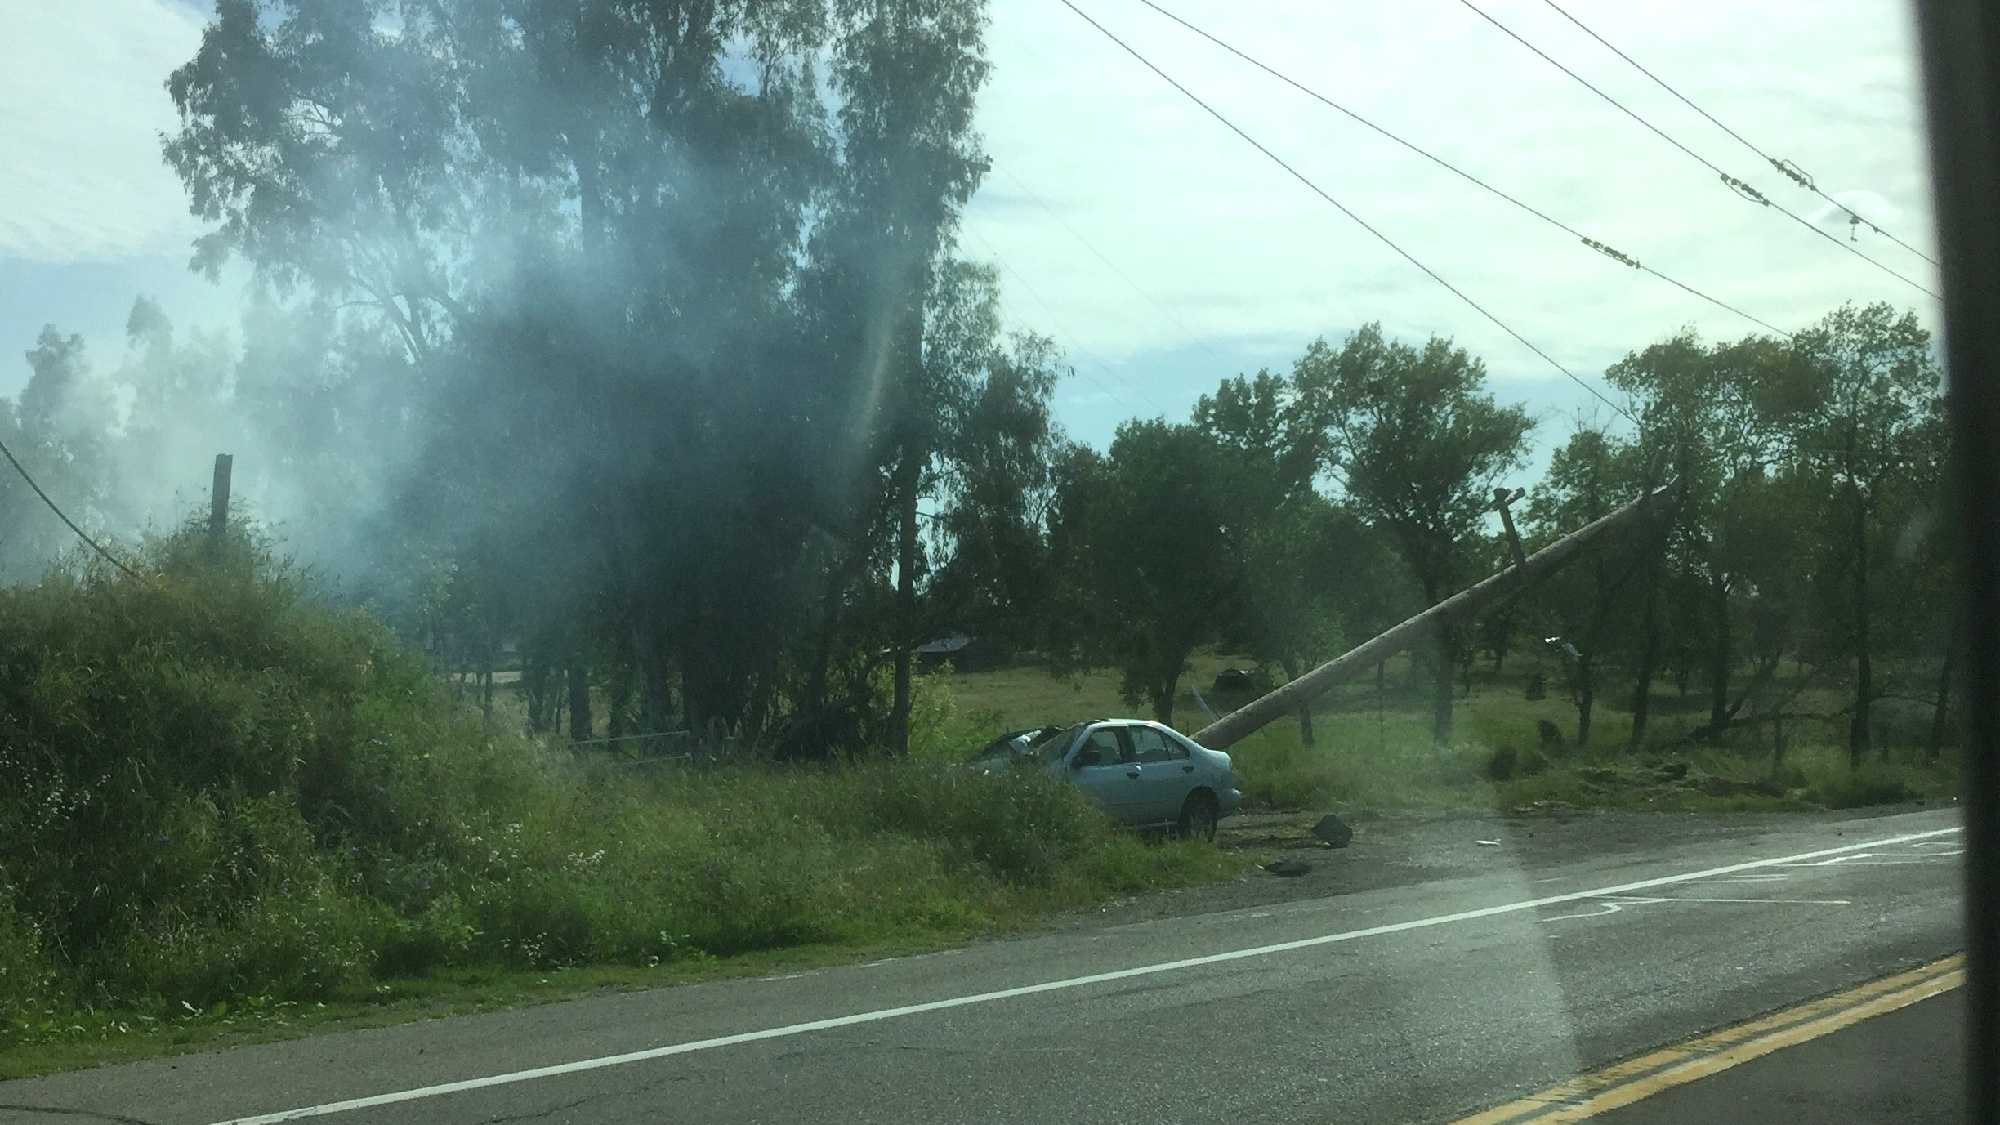 A car crash into a power pole on PFE Road led to a power outage in Citrus Heights on Wednesday, April 13, 2016. Photo shared by KCRA Viewer Greg G. shows the aftermath of the crash.